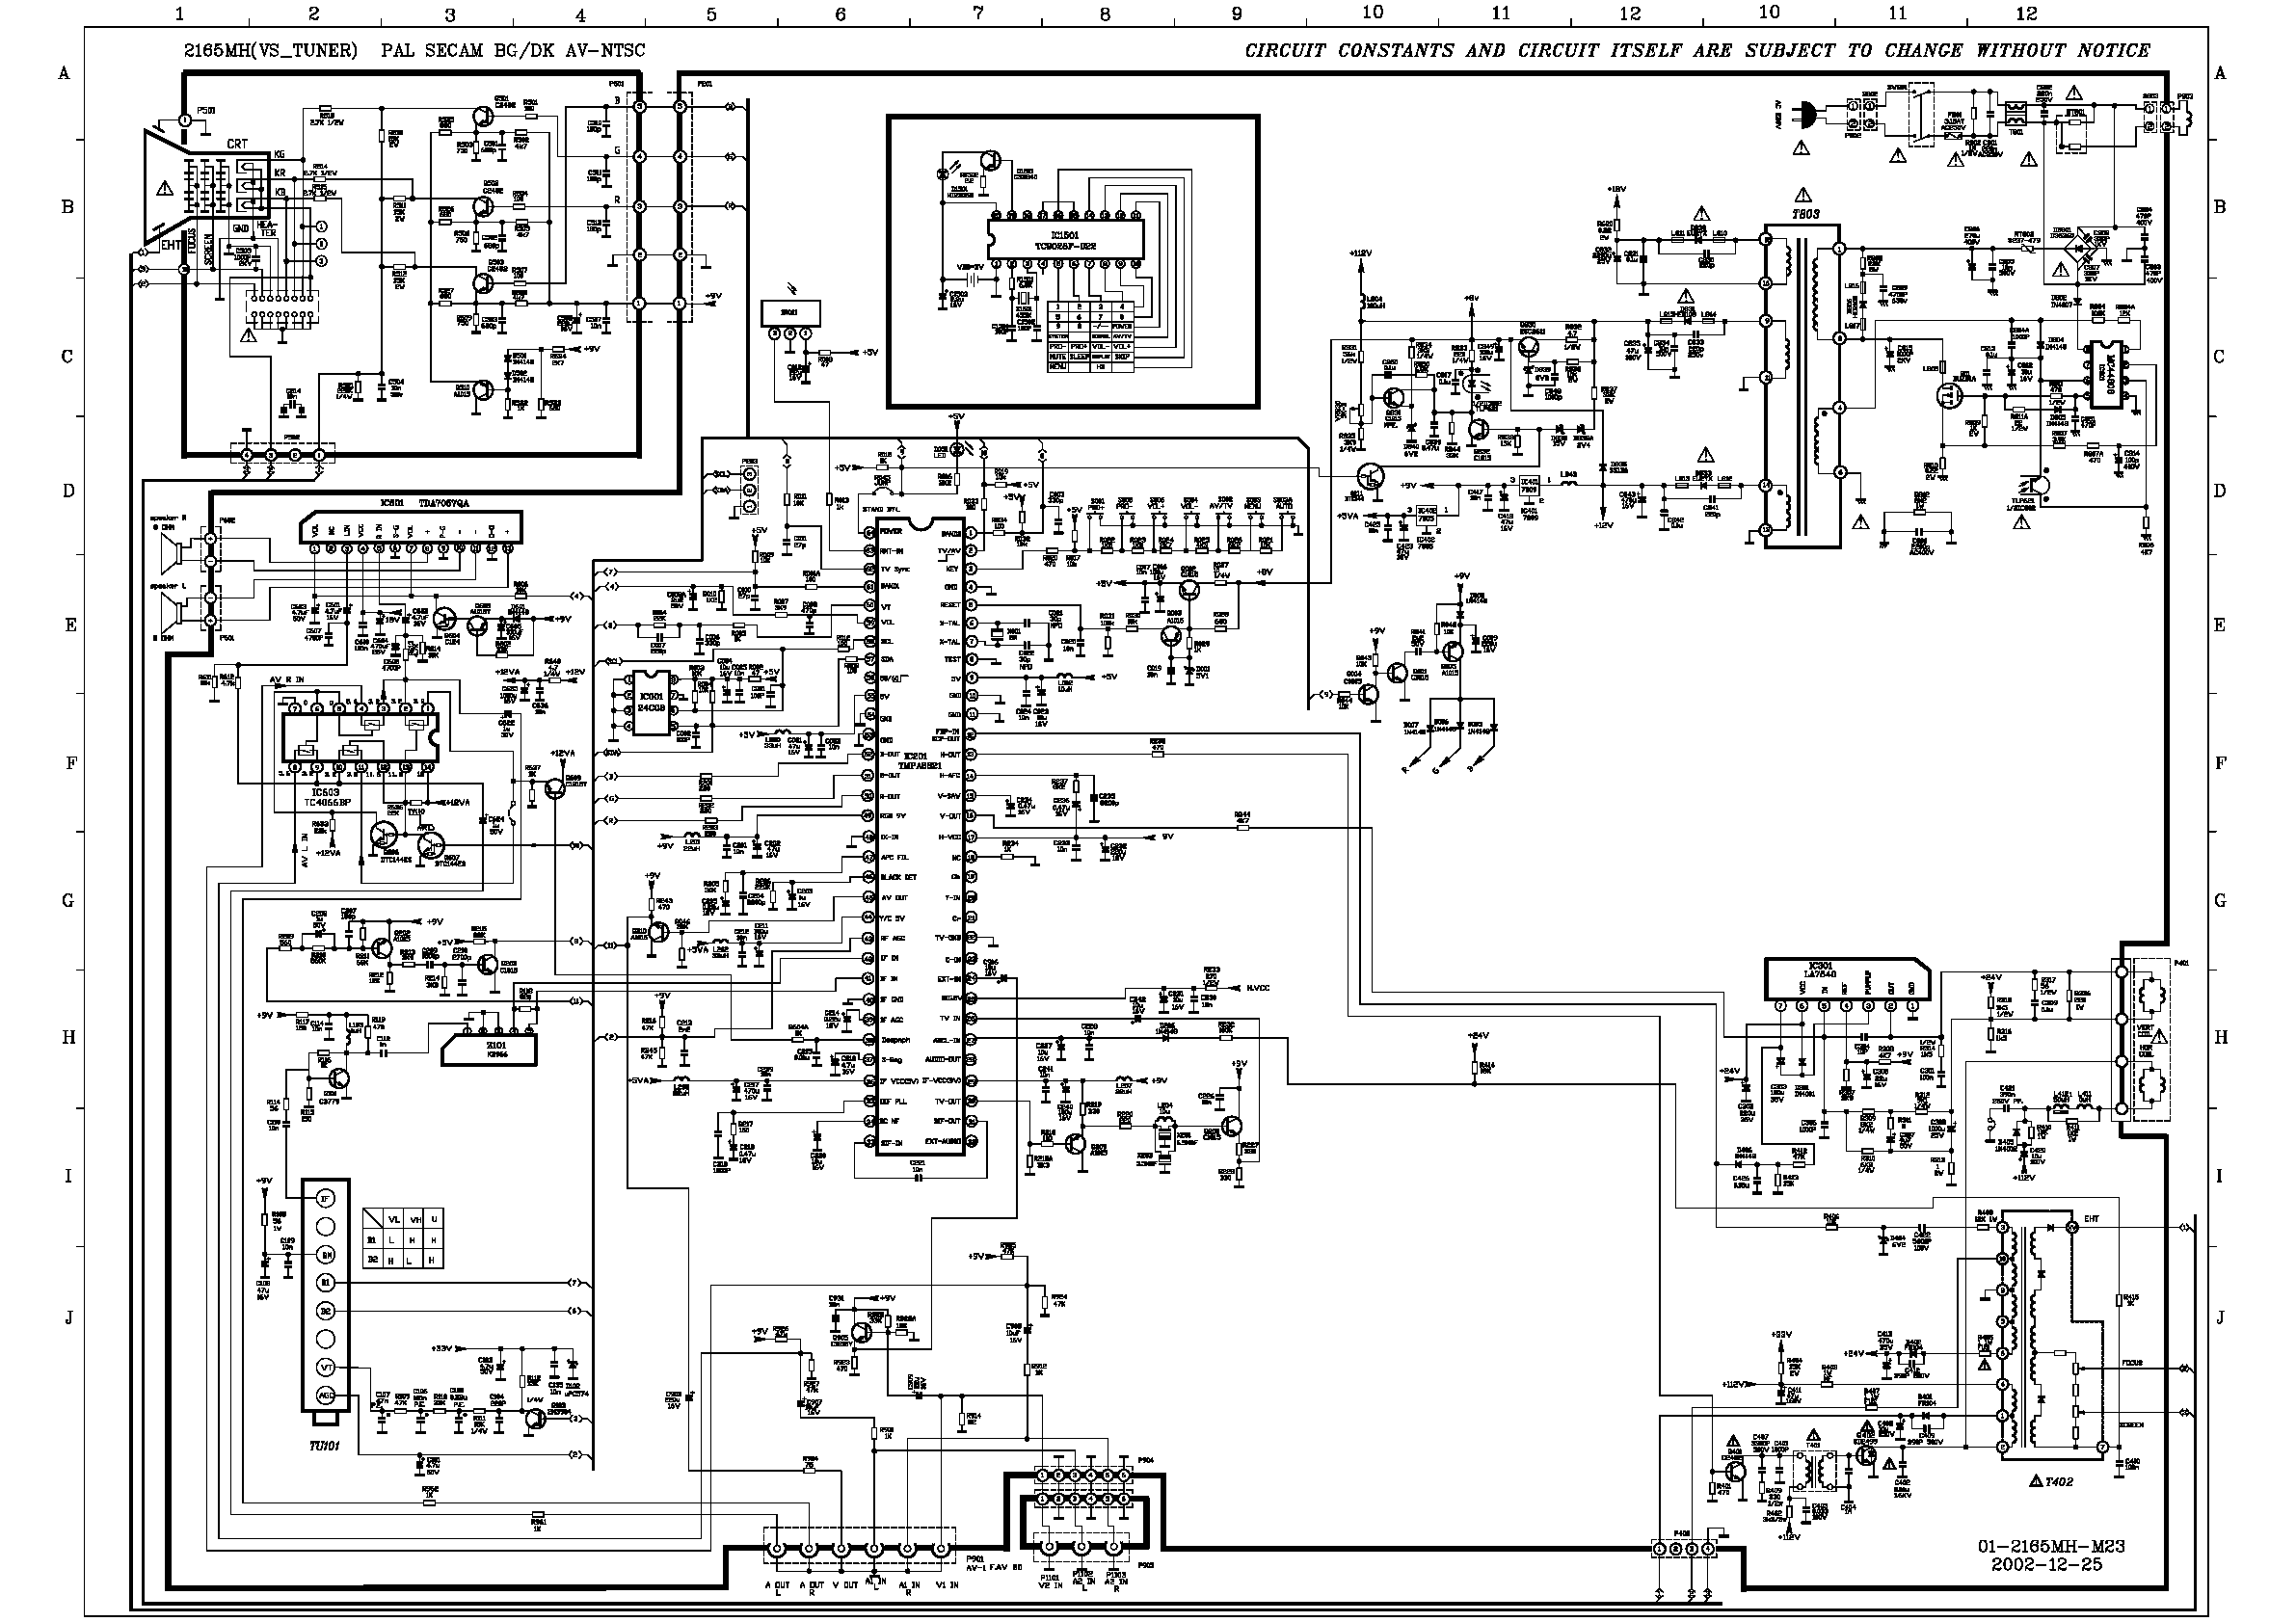 Circuit Diagram For Tv: Tv schematic diagram wiring